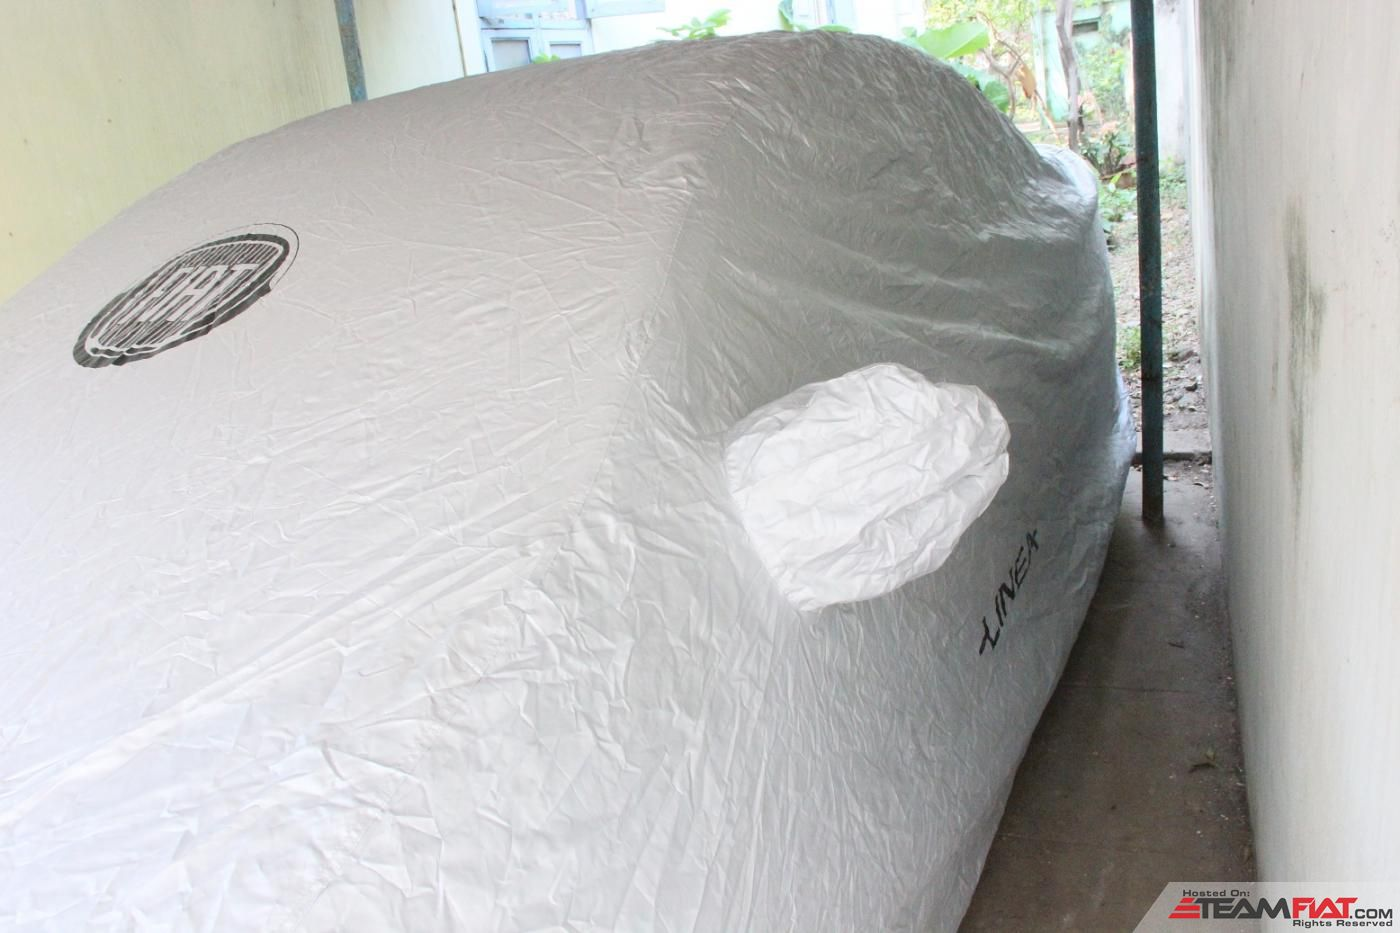 CarCover3.jpg